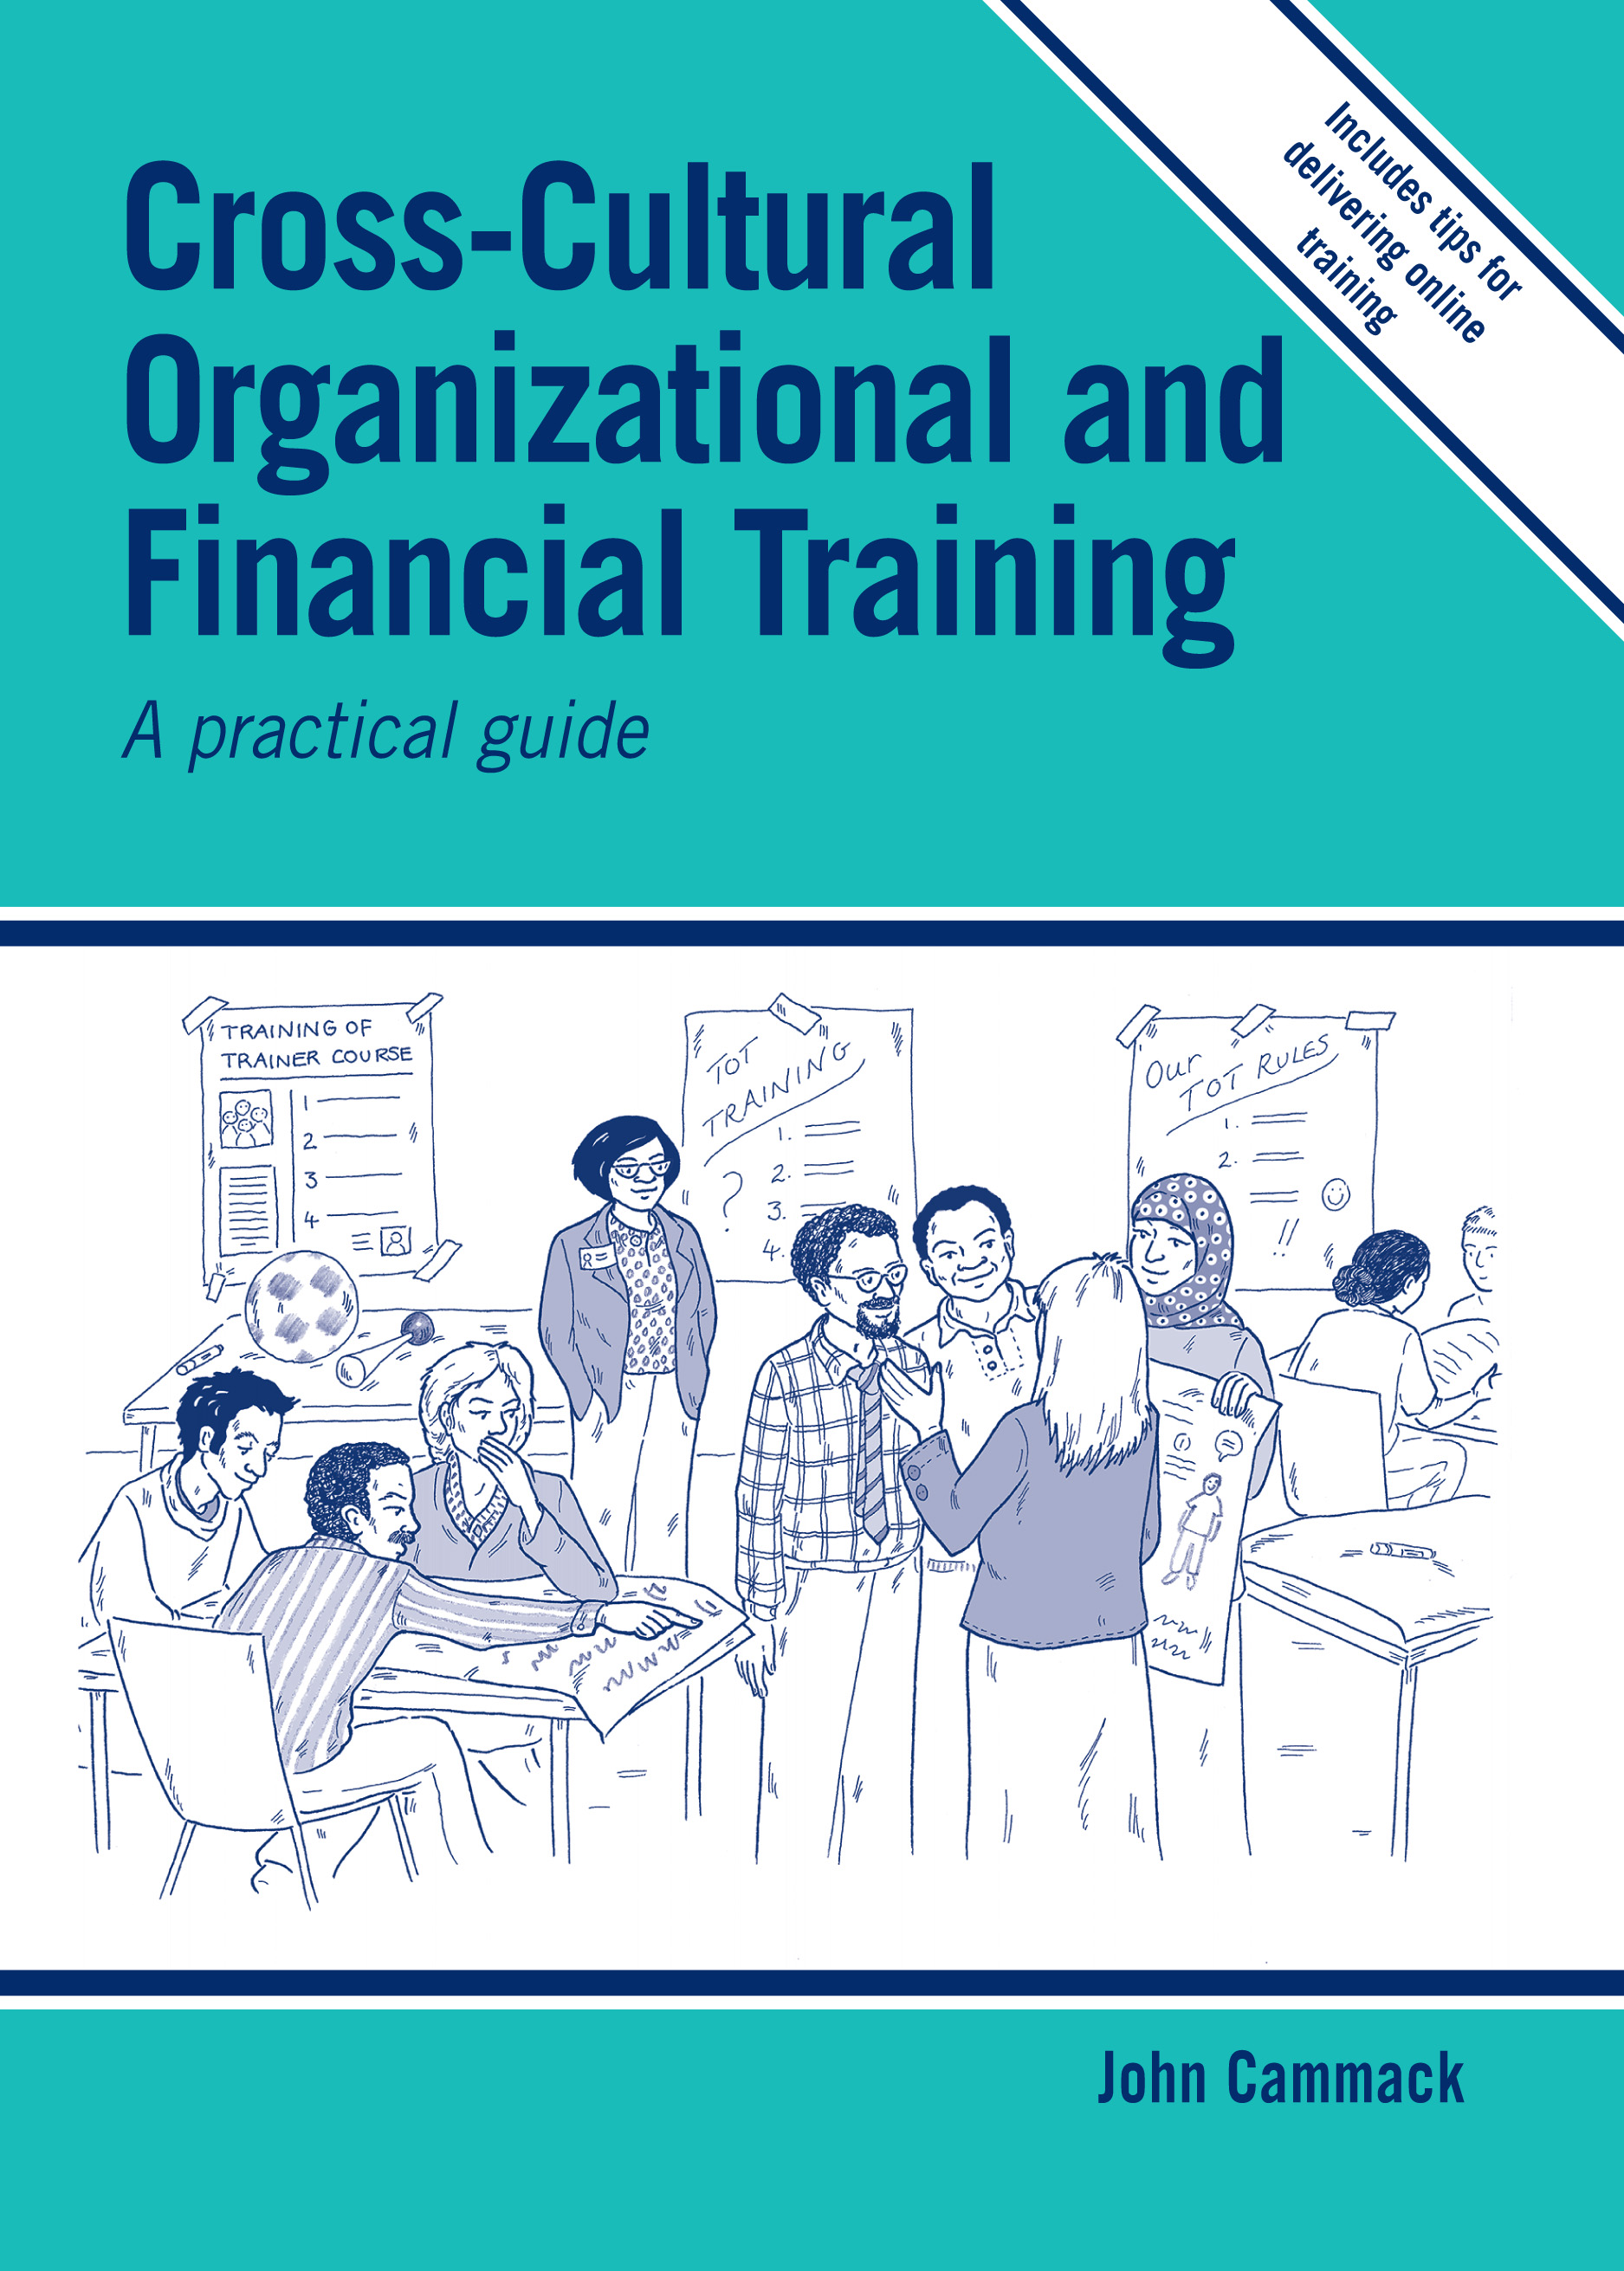 Cross-cultural Organizational and Financial Training